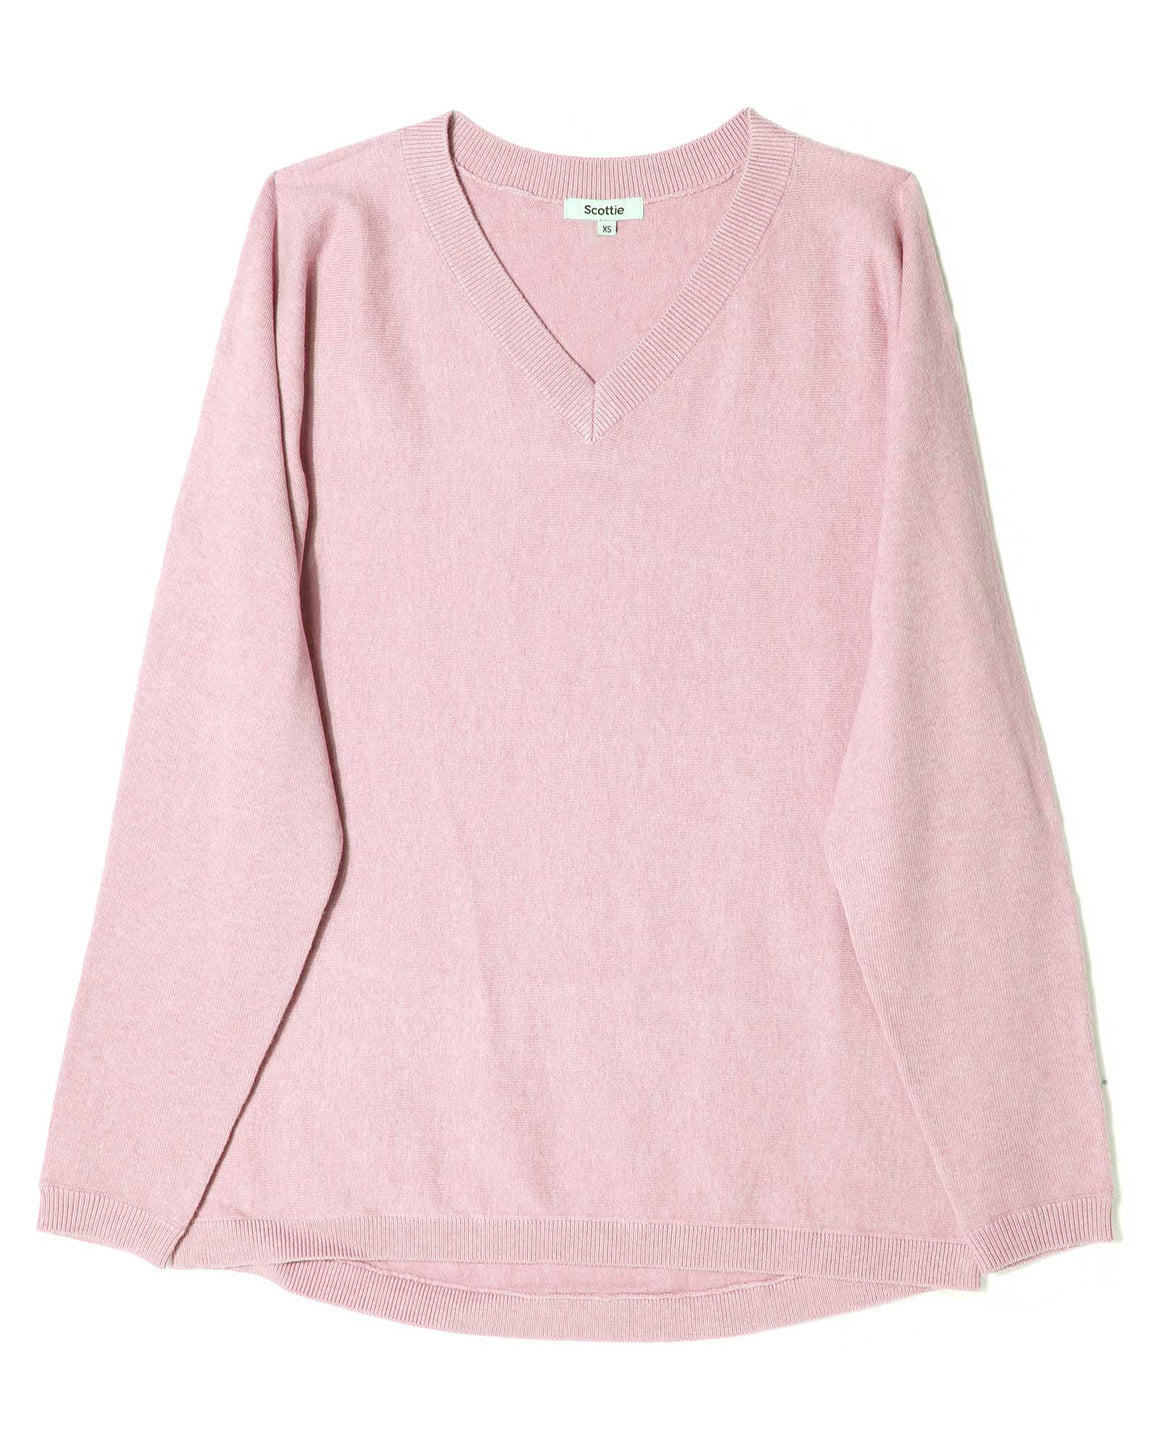 V-Neck Sweater - Pink Calico